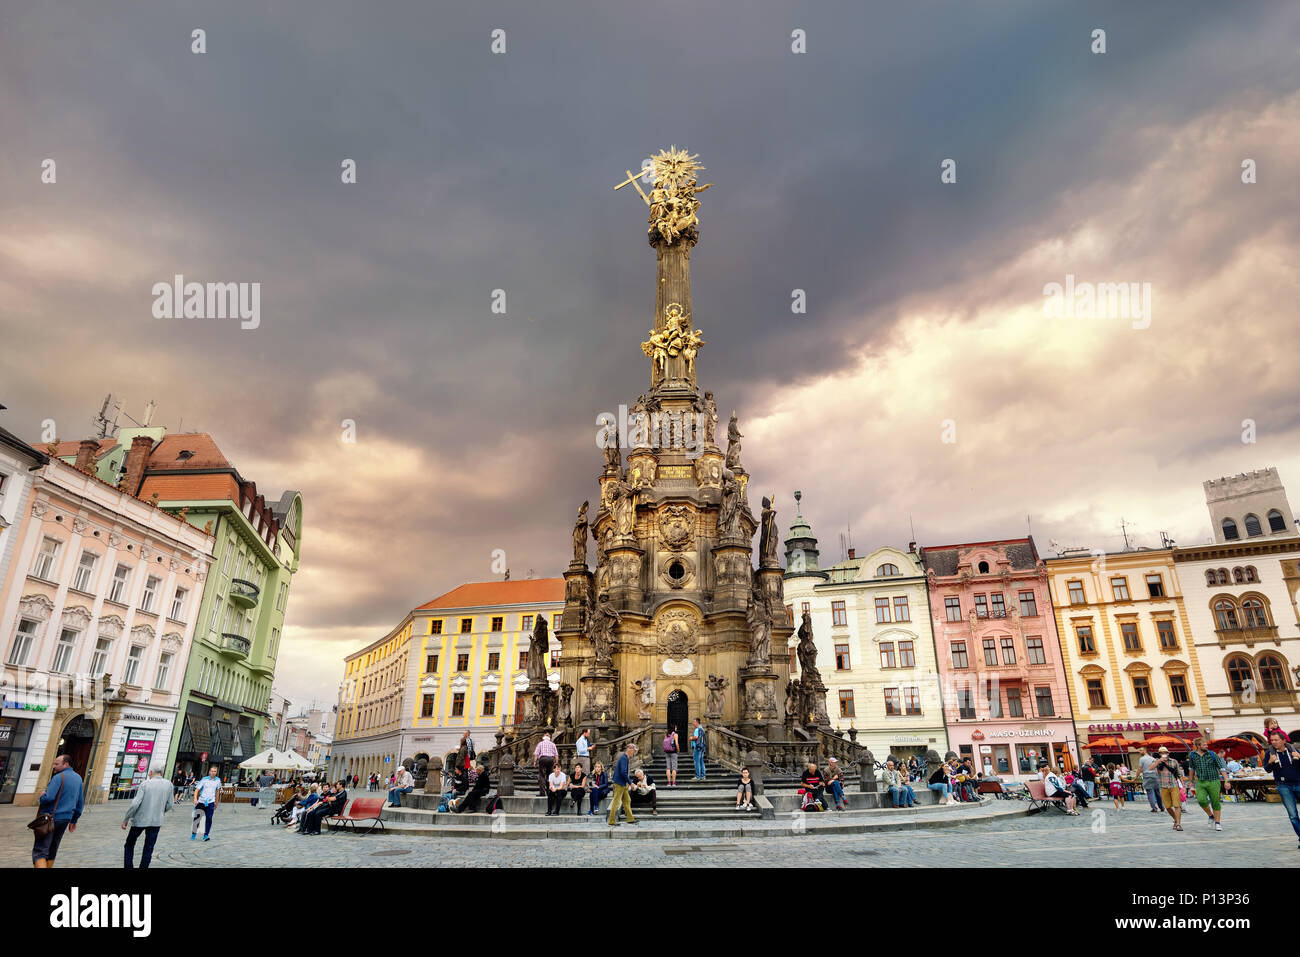 View of main square with monument Holy Trinity Column in historic town centre at sunset. Olomouc, Czech Republic - Stock Image